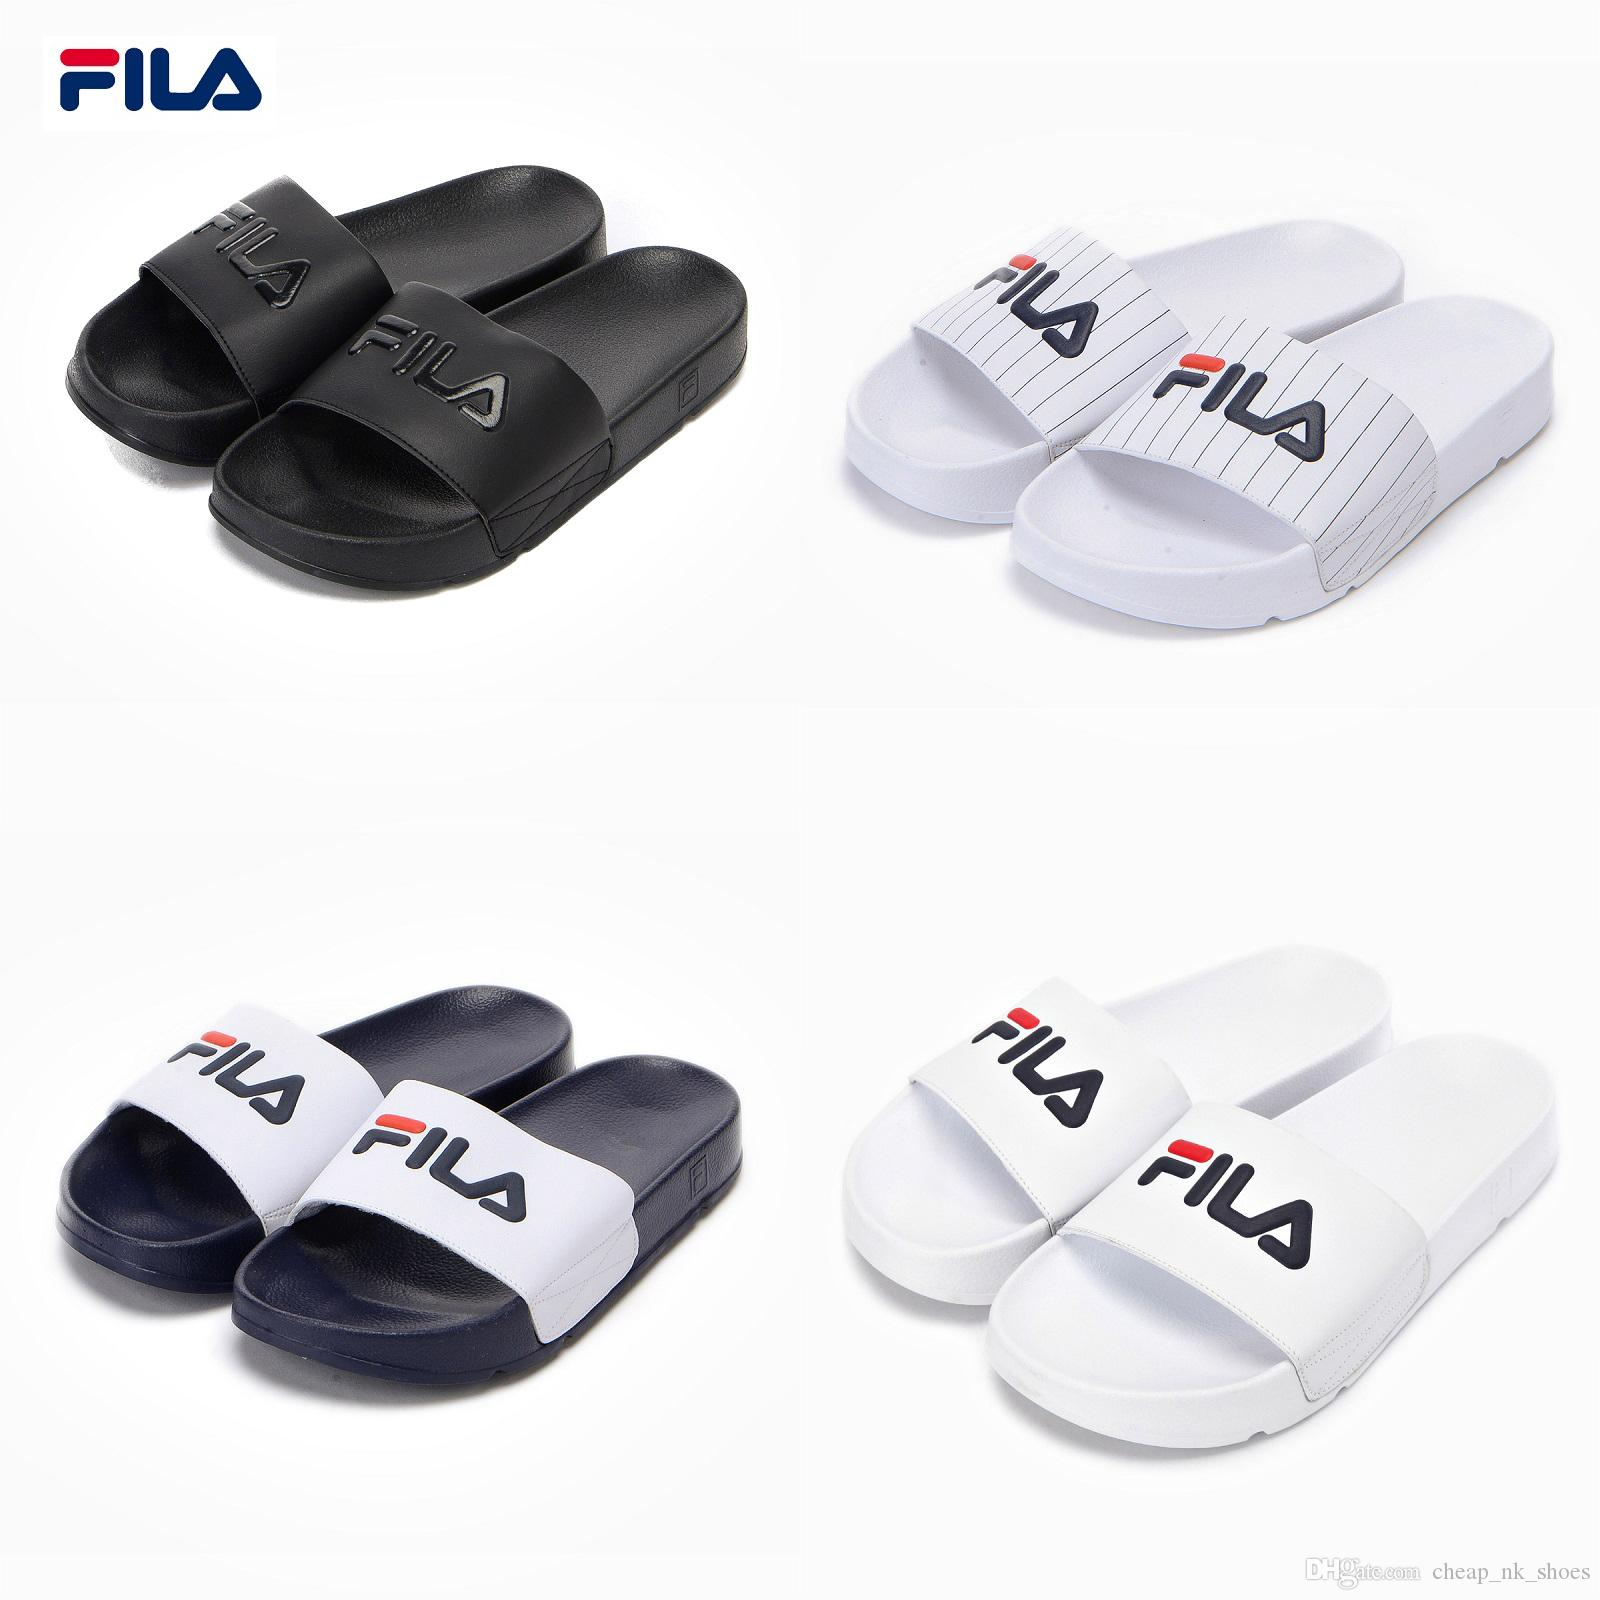 46168c3ae932 Original Fila Sports Slippers DRIFTER Drifting Series Men Women Casual  Beach Sandals Slippers Breathable Wear Resistant Slippers Eur 36 44 High  Heel Shoes ...